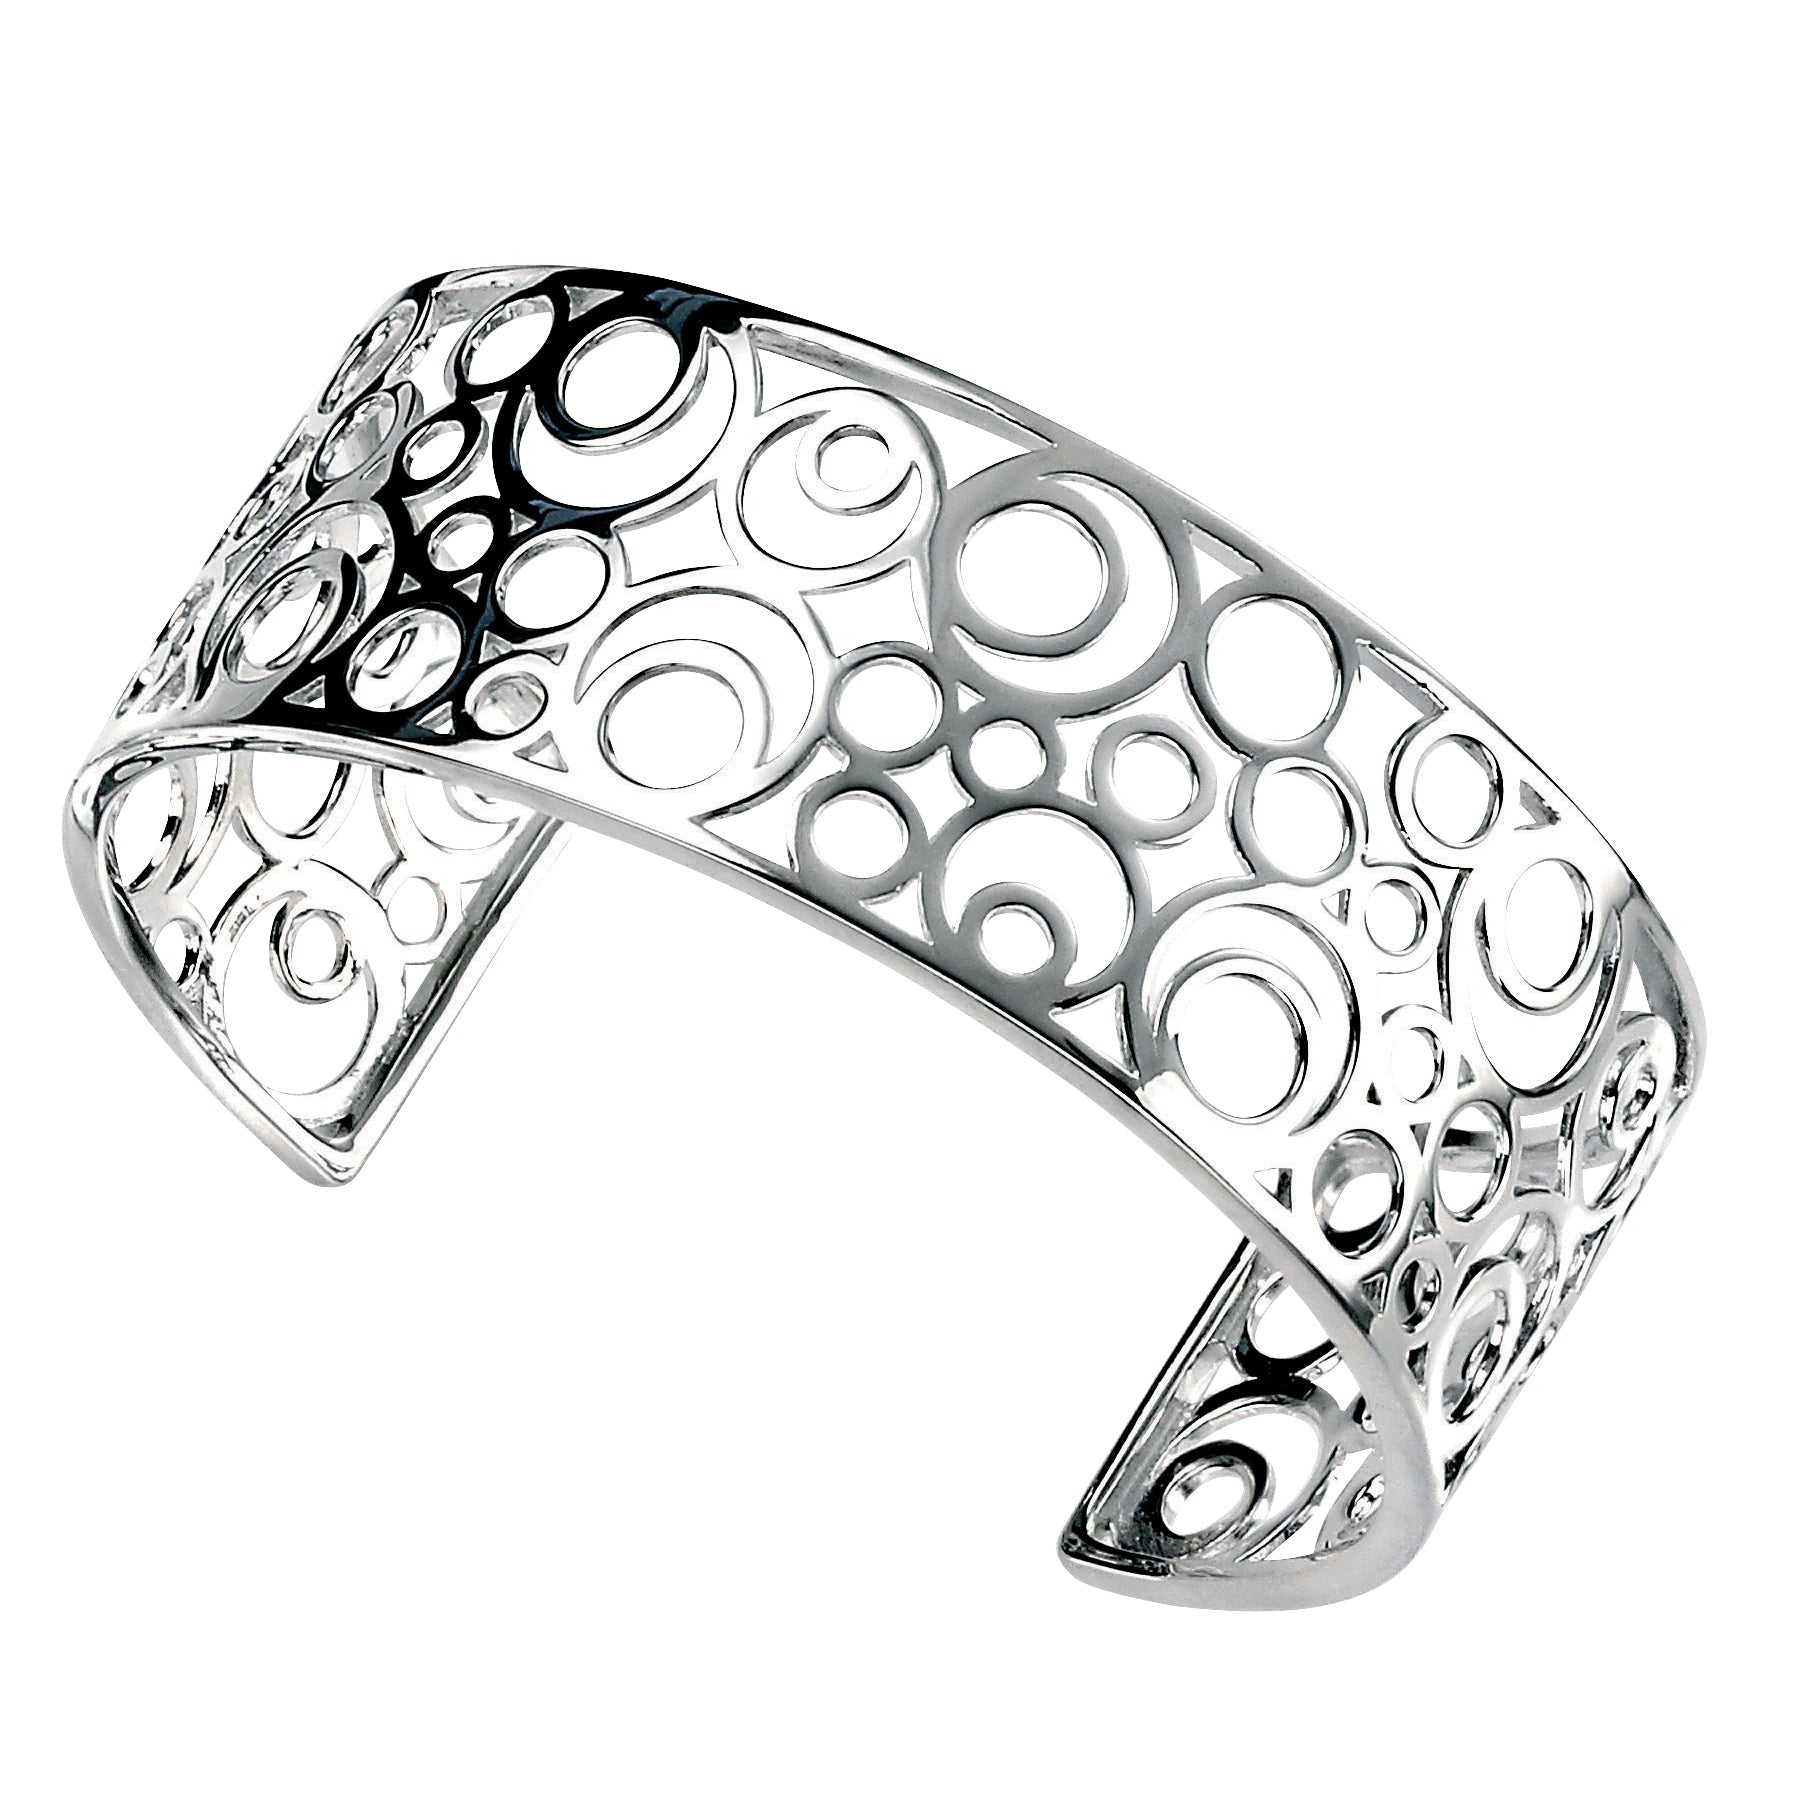 Sterling Silver Open Circles Cluster Cuff Bangle